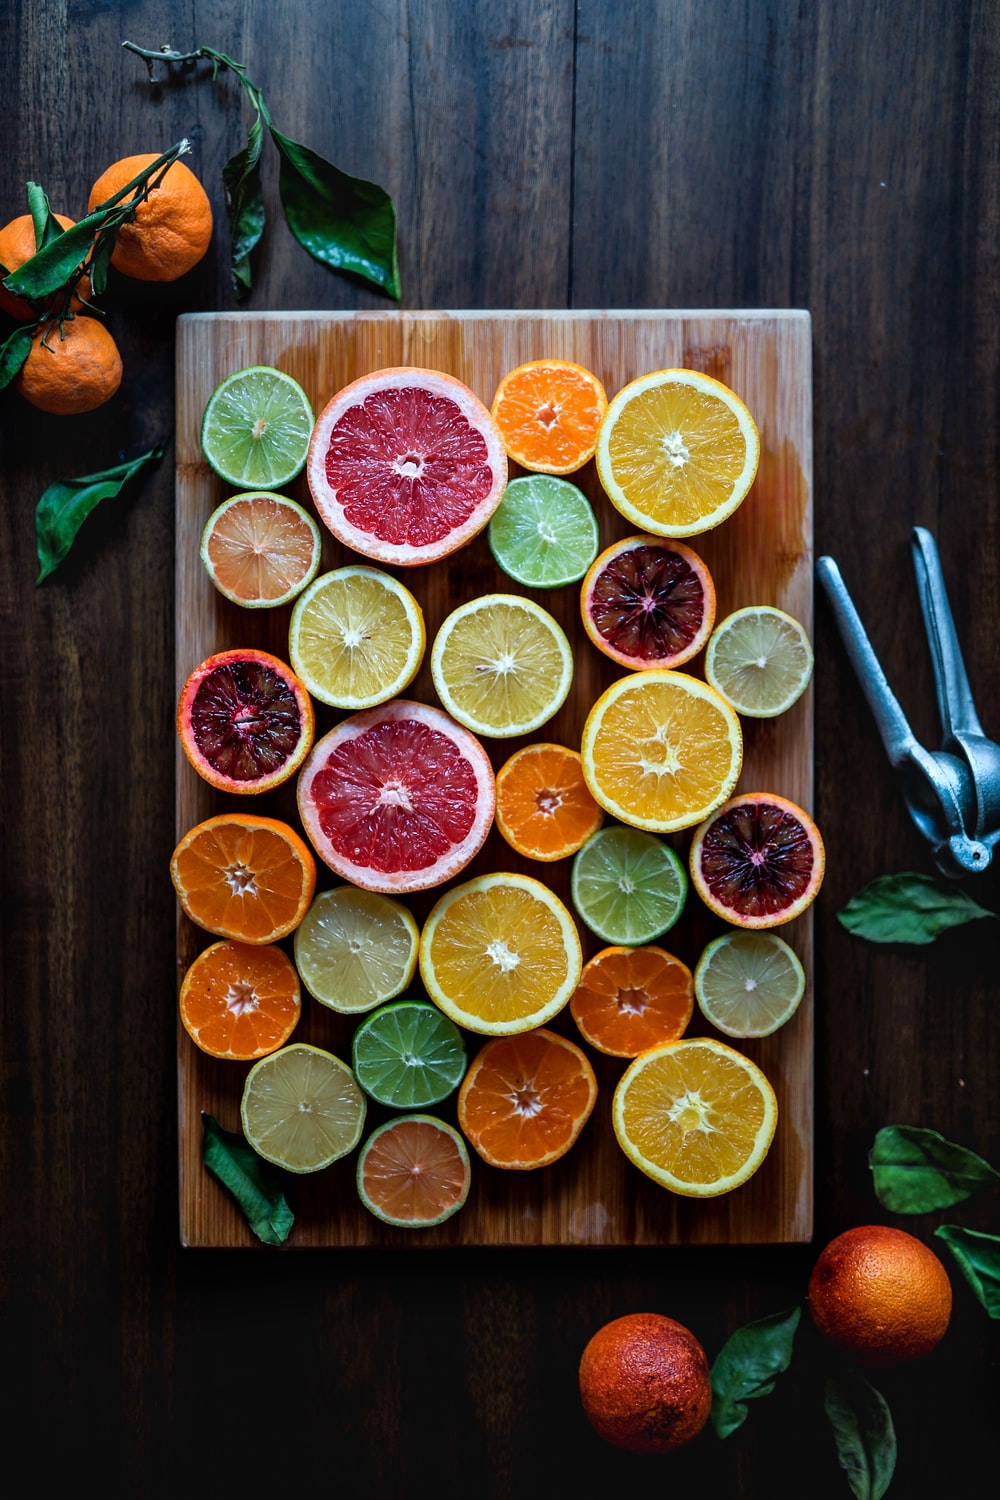 assorted sliced citrus fruits on brown wooden chopping board